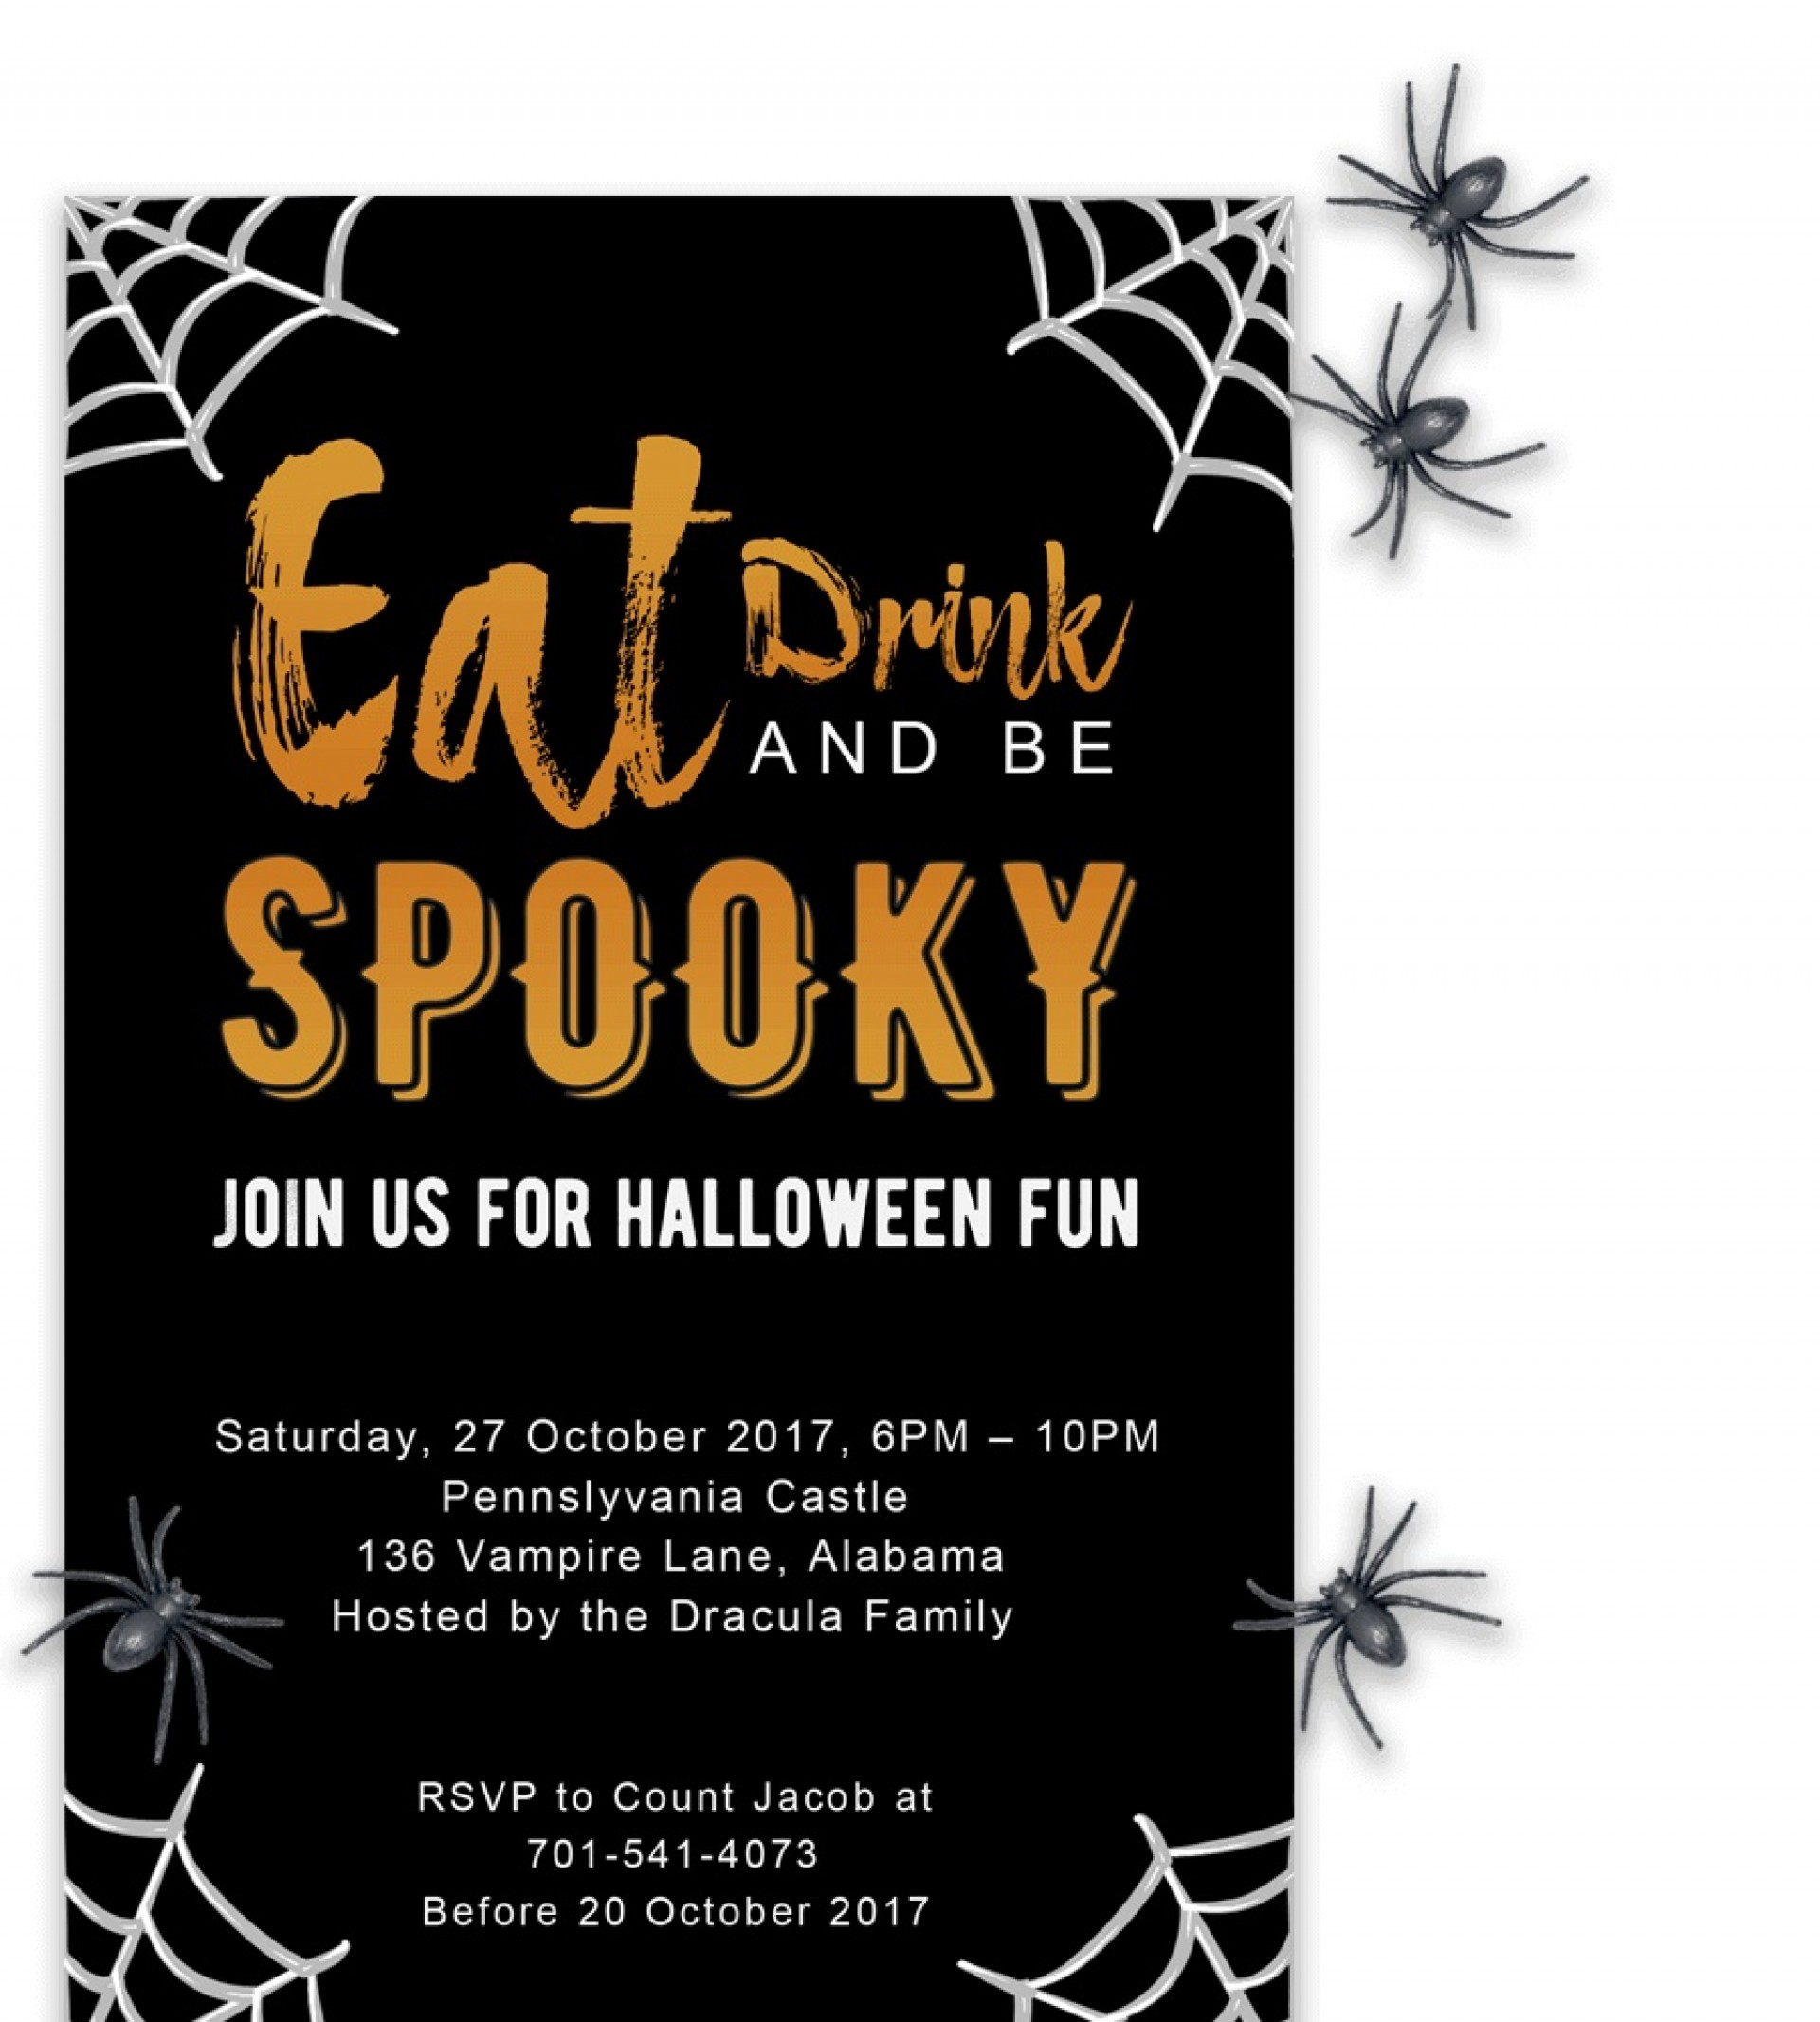 008 Fascinating Free Halloween Party Invitation Template Sample  Printable Birthday For Word Download1920